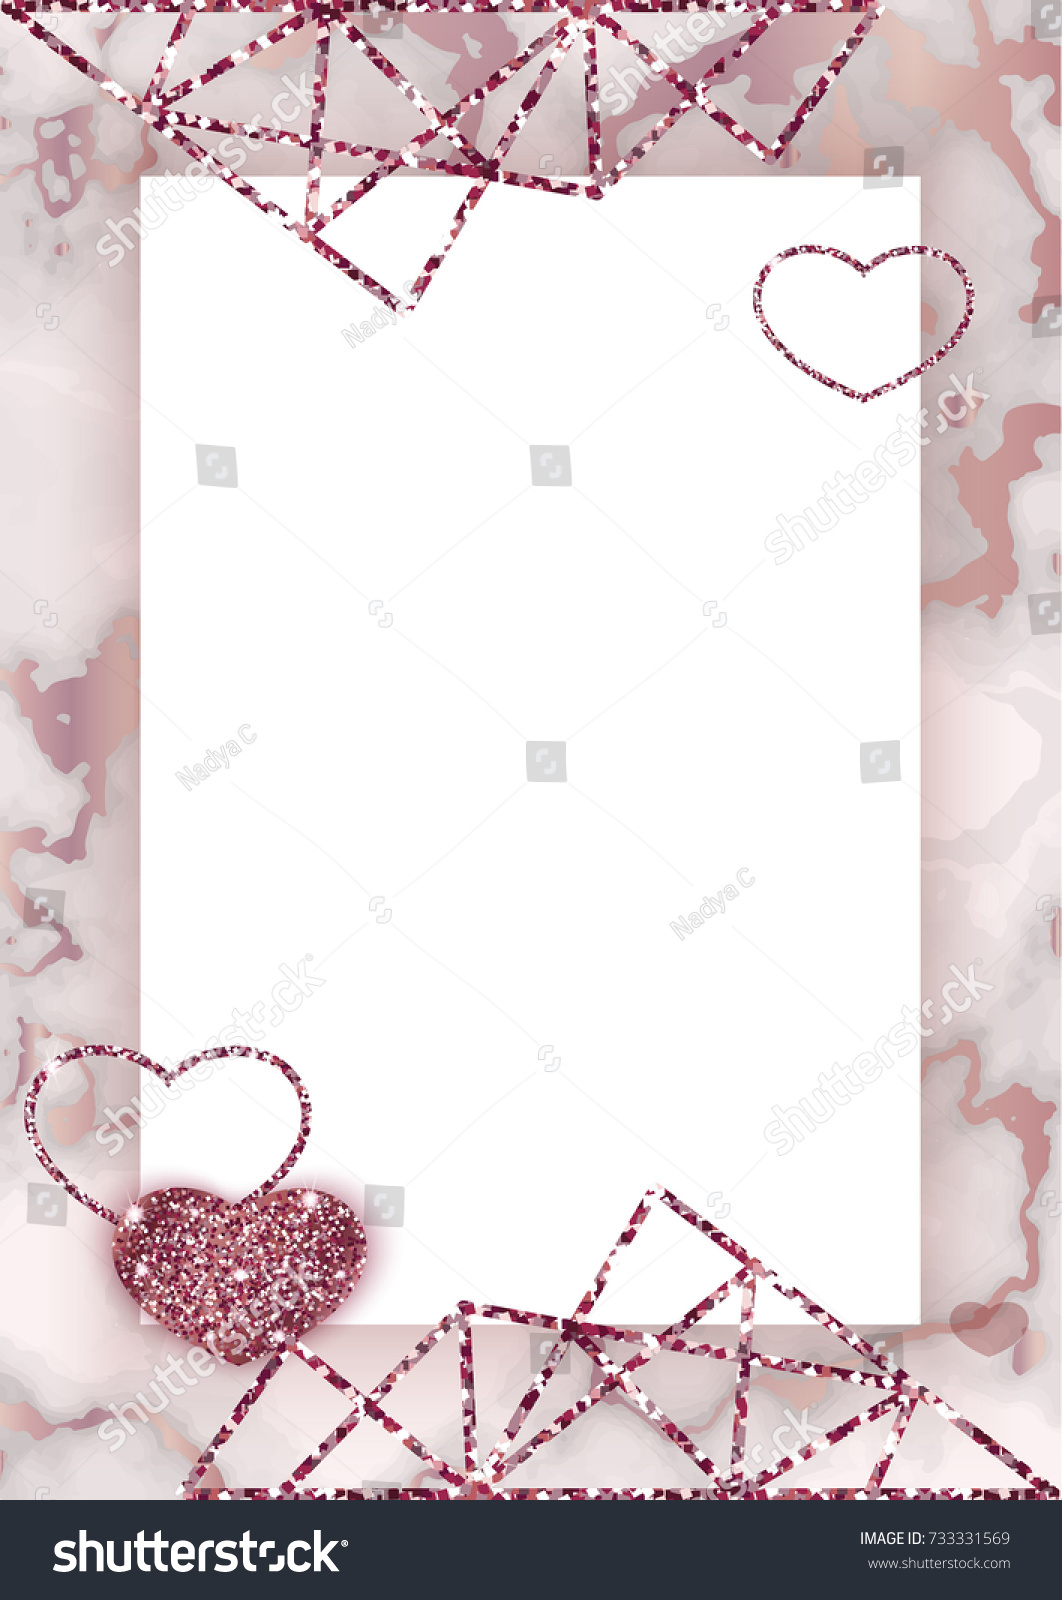 Top Wallpaper Marble Heart - stock-vector-geometric-wedding-invitation-marble-texture-background-in-trendy-minimalistic-style-heart-733331569  Pictures_571110.jpg